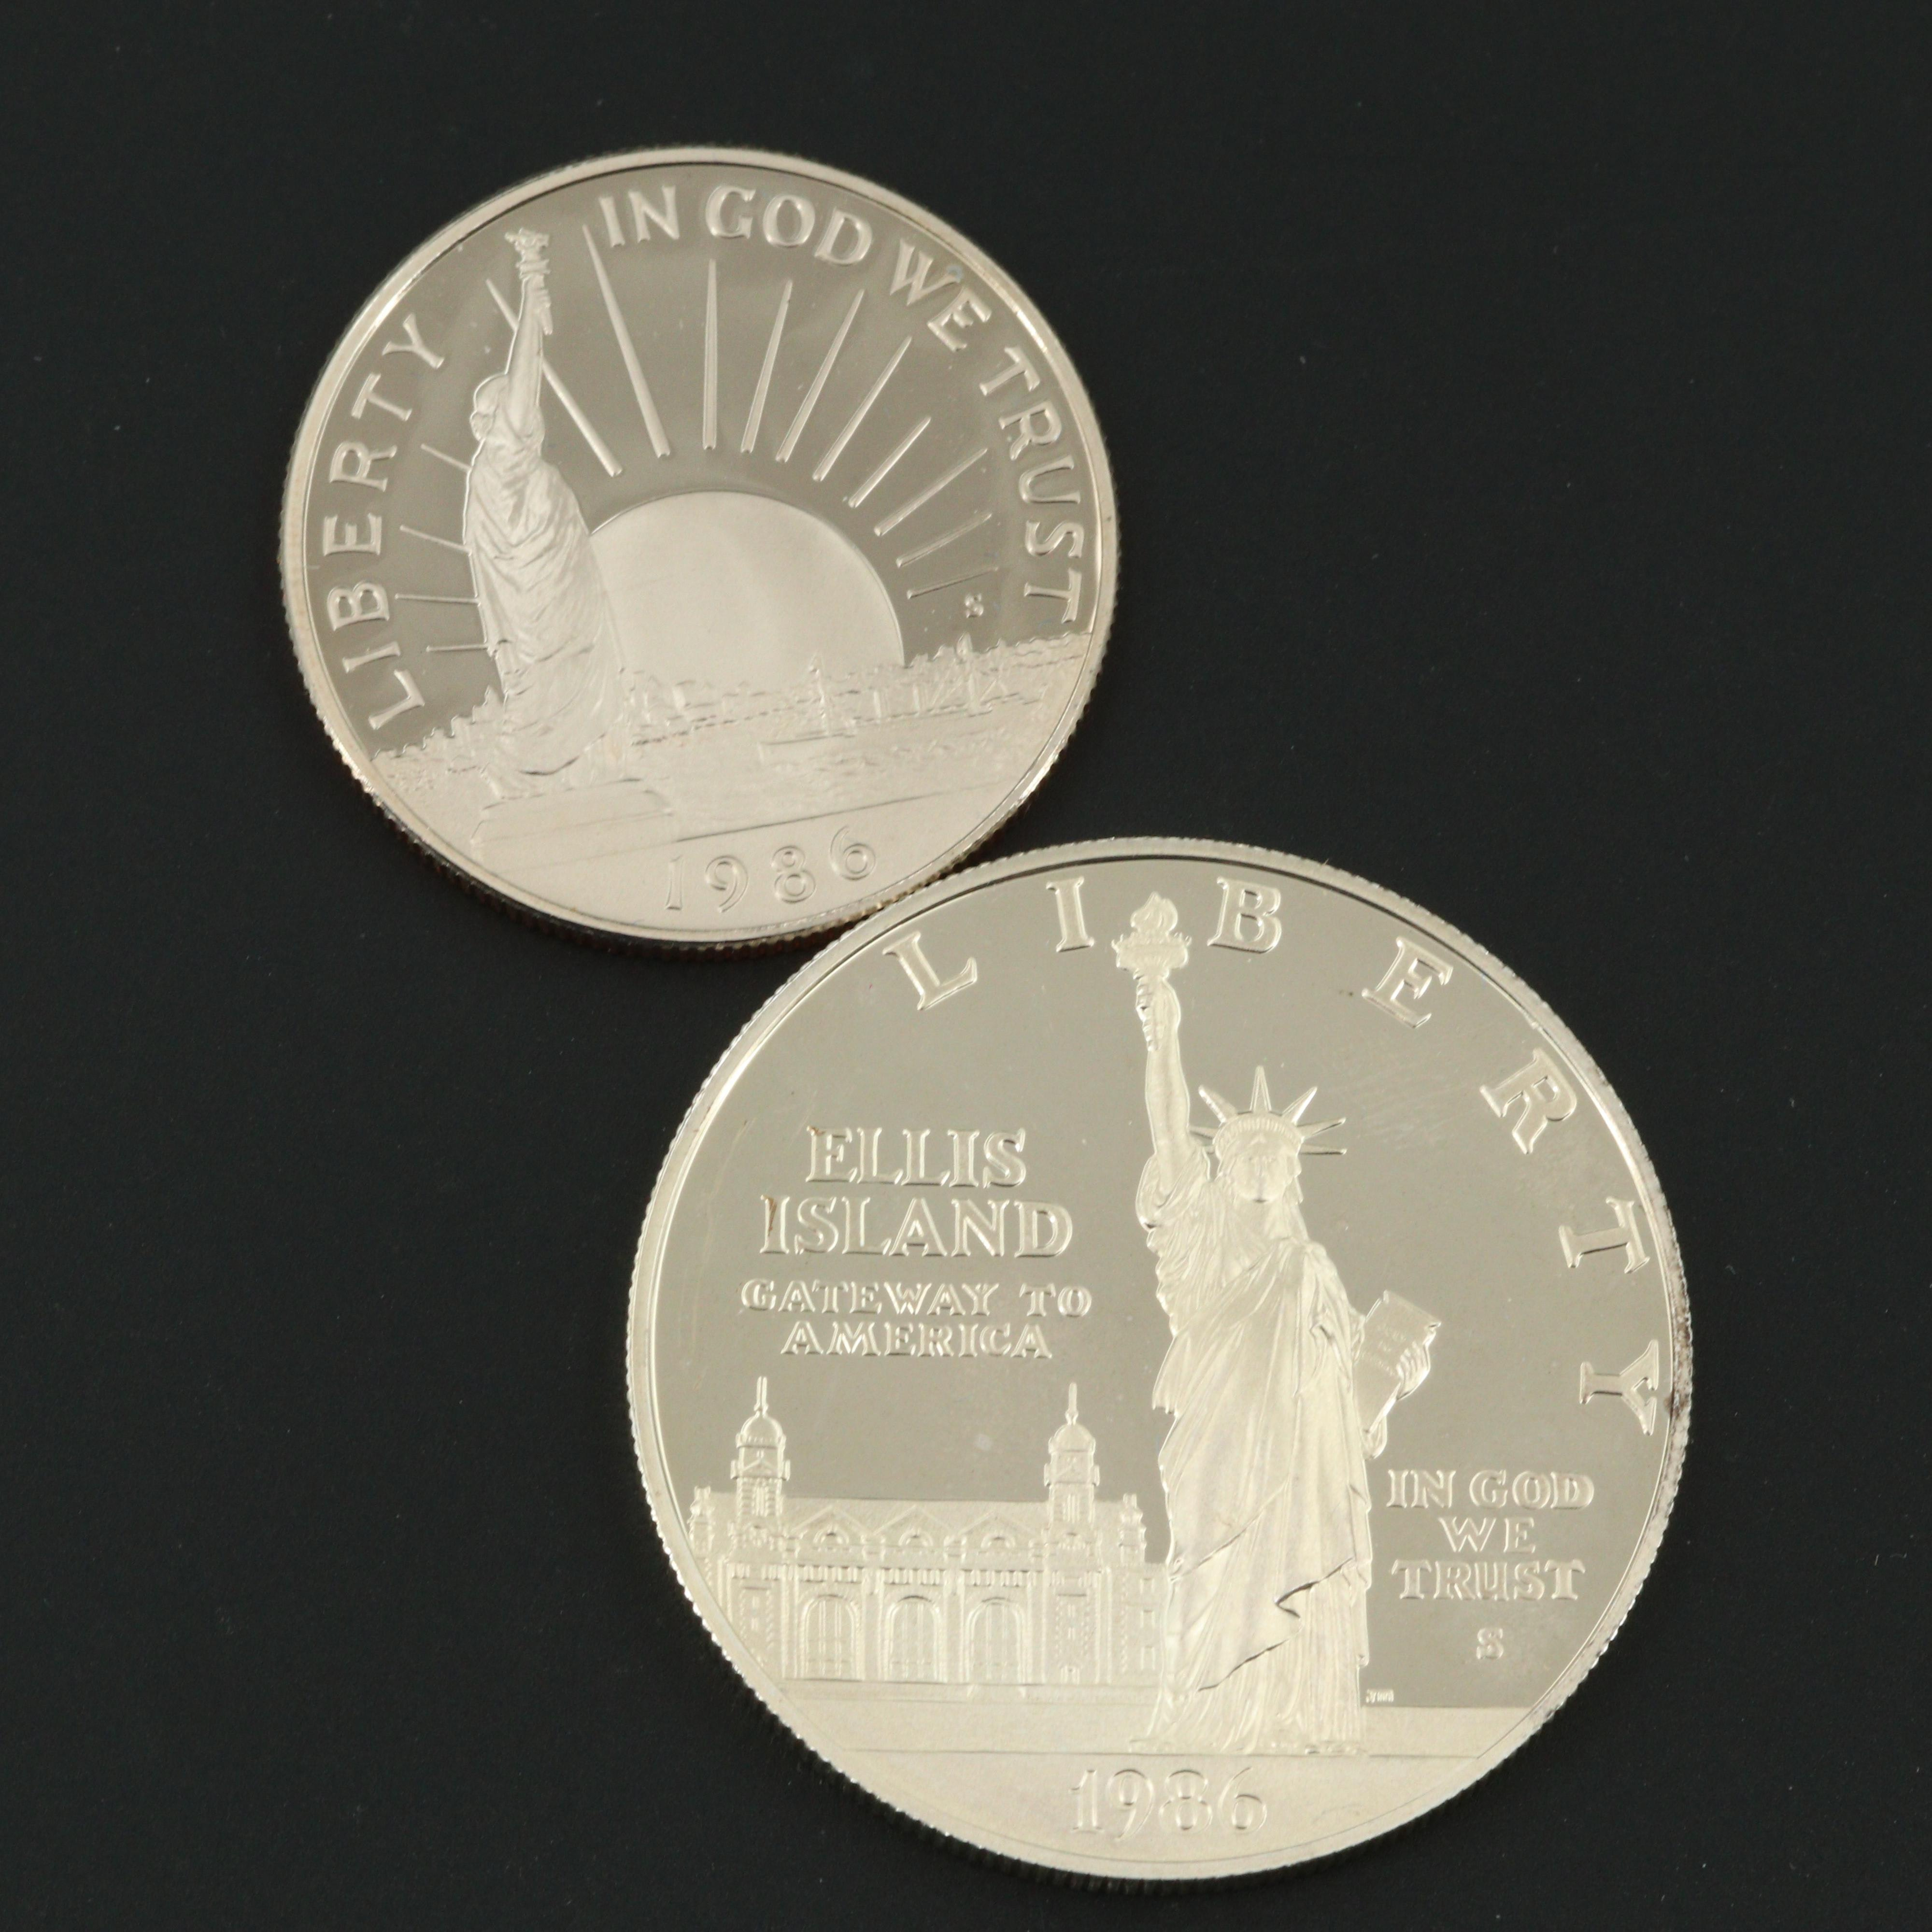 U.S. Mint 1986 Statue of Liberty Commemorative Two-Coin Proof Set